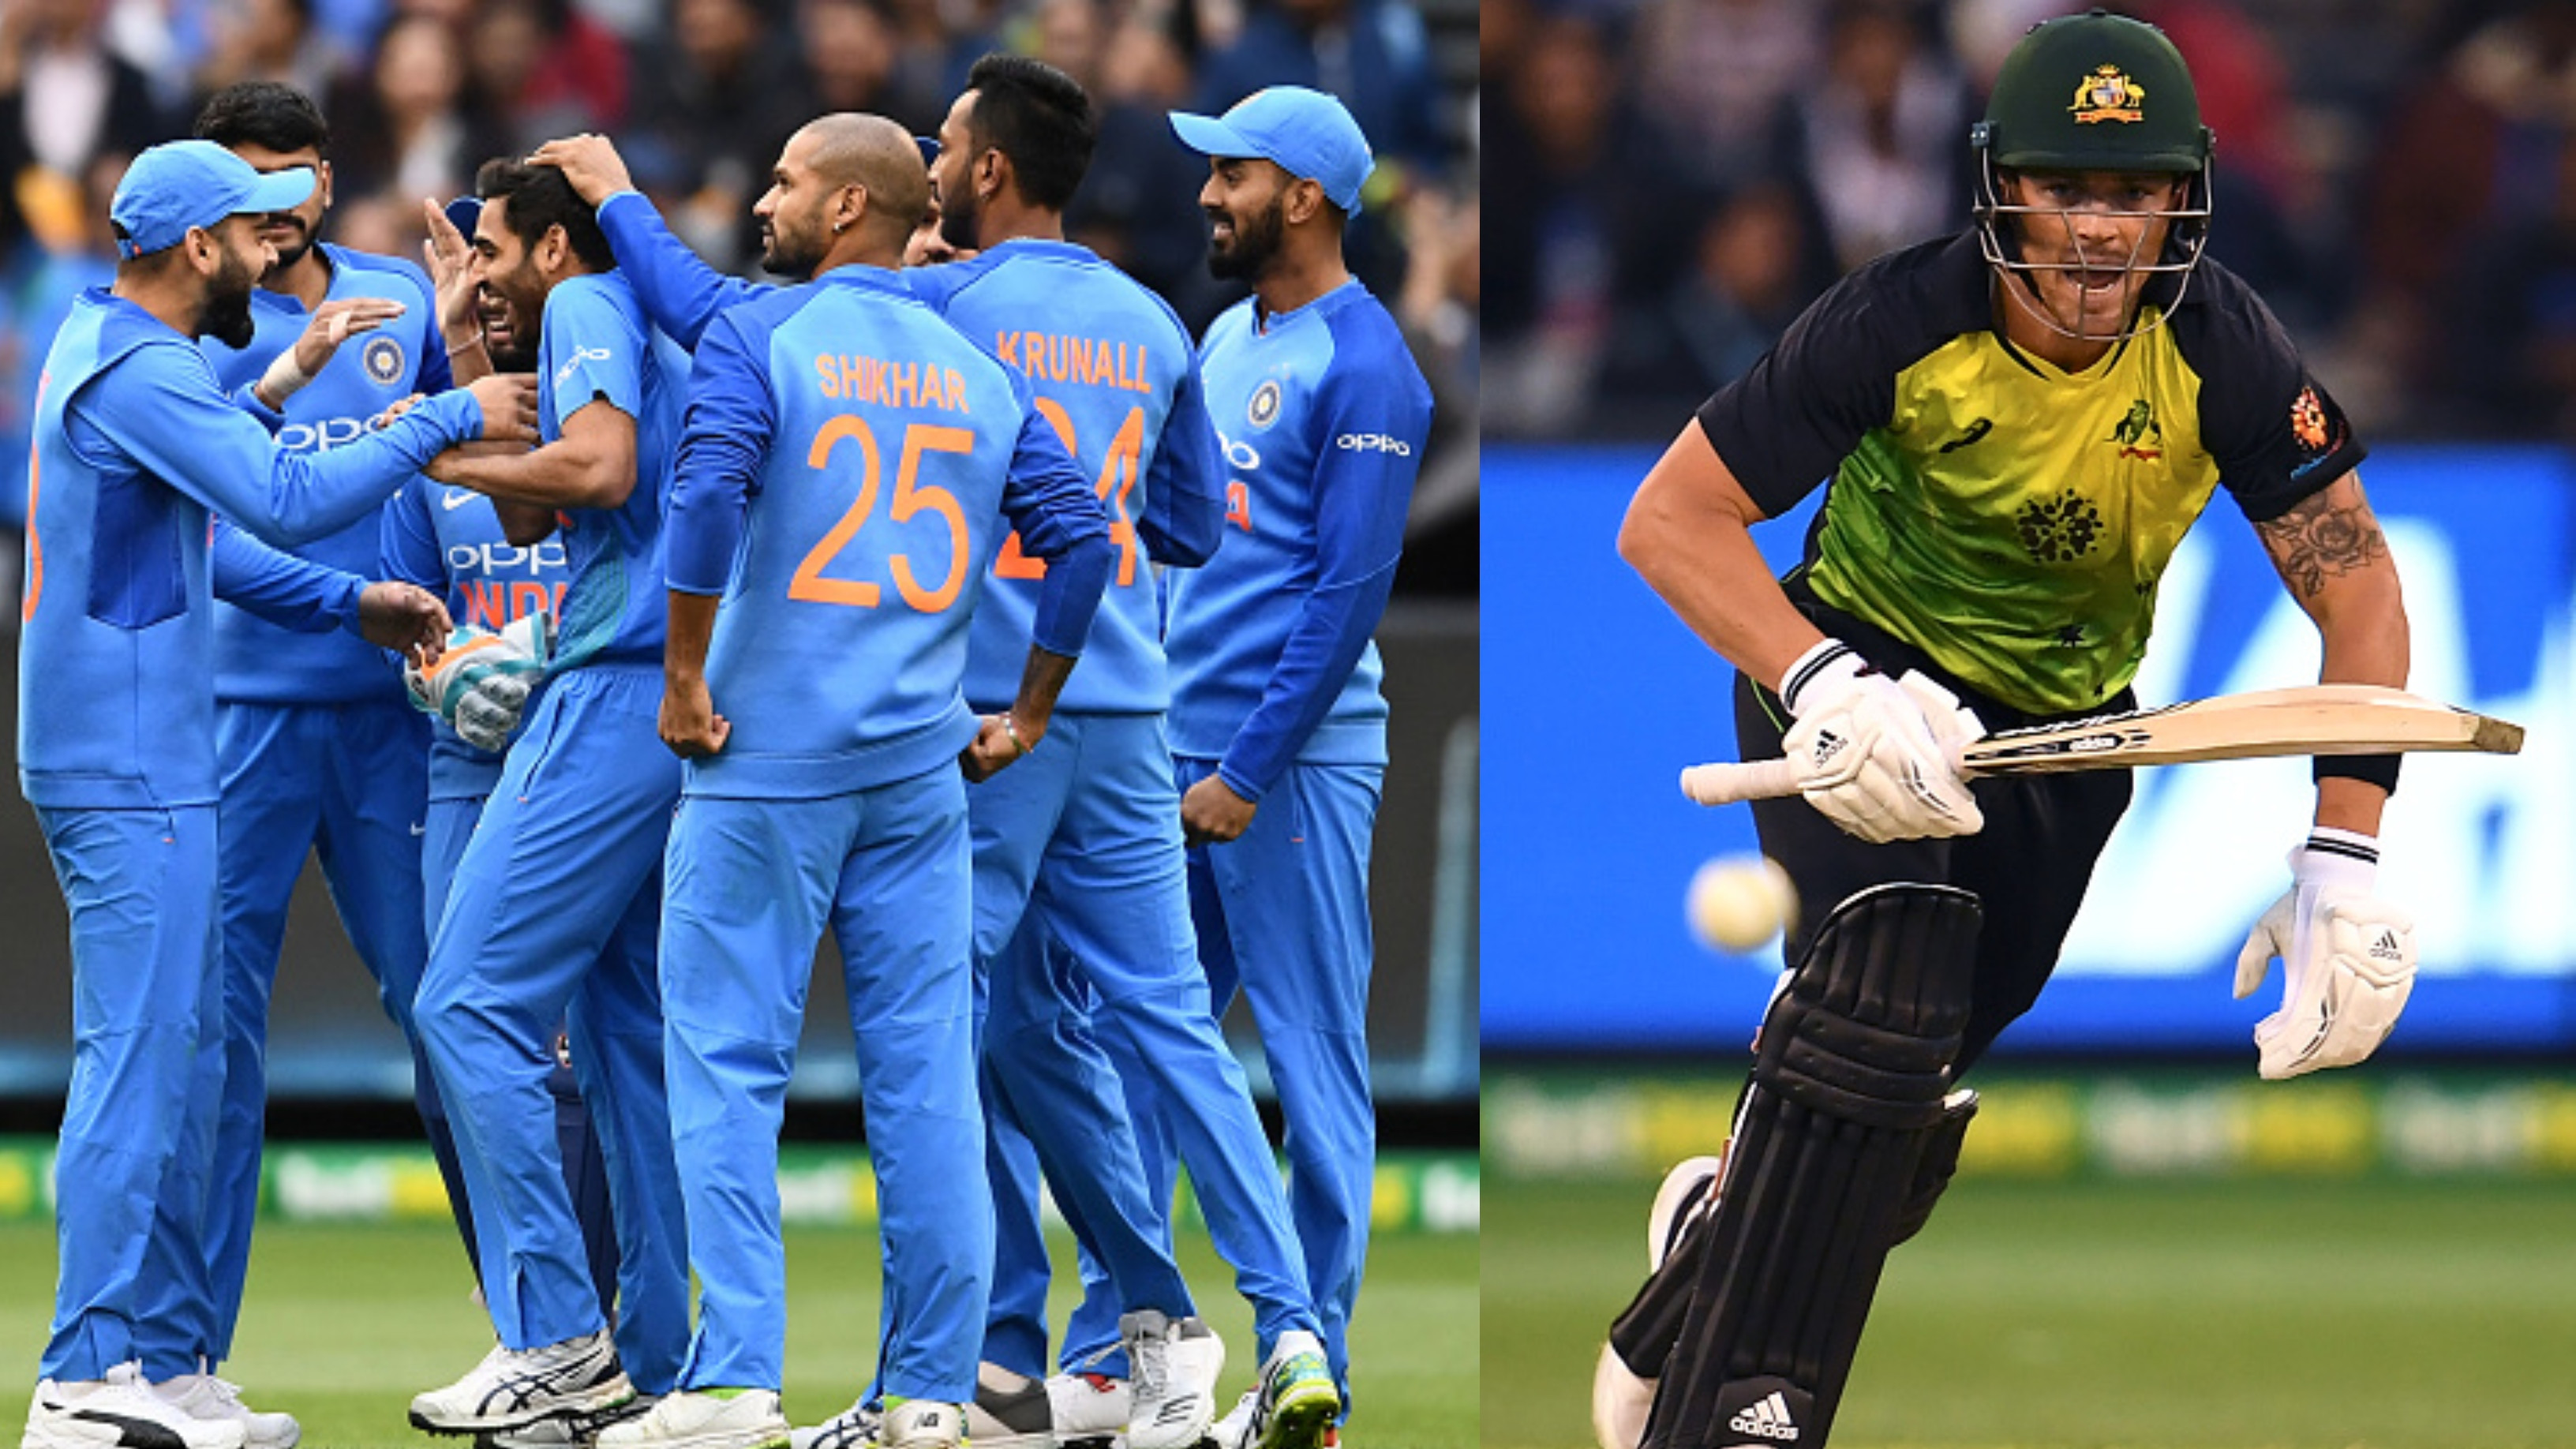 AUS v IND 2018-19: Ben McDermott says Australia are just one win away from a series win over India